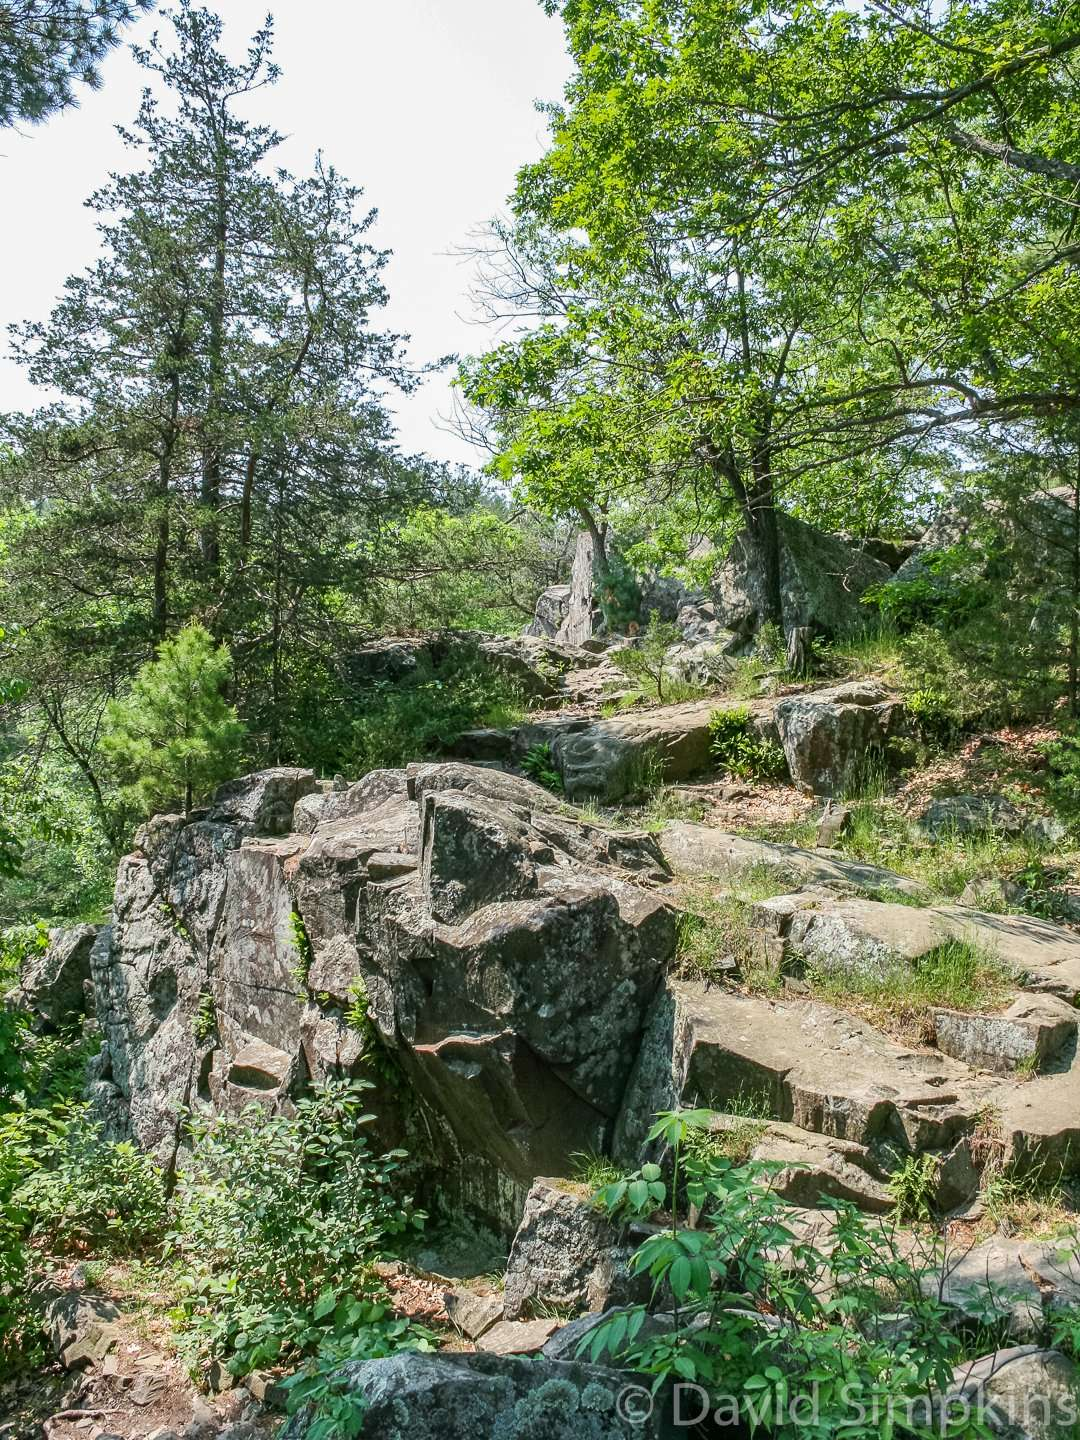 Ancient volcanoes formed the basalt rock formations at Interstate State Park